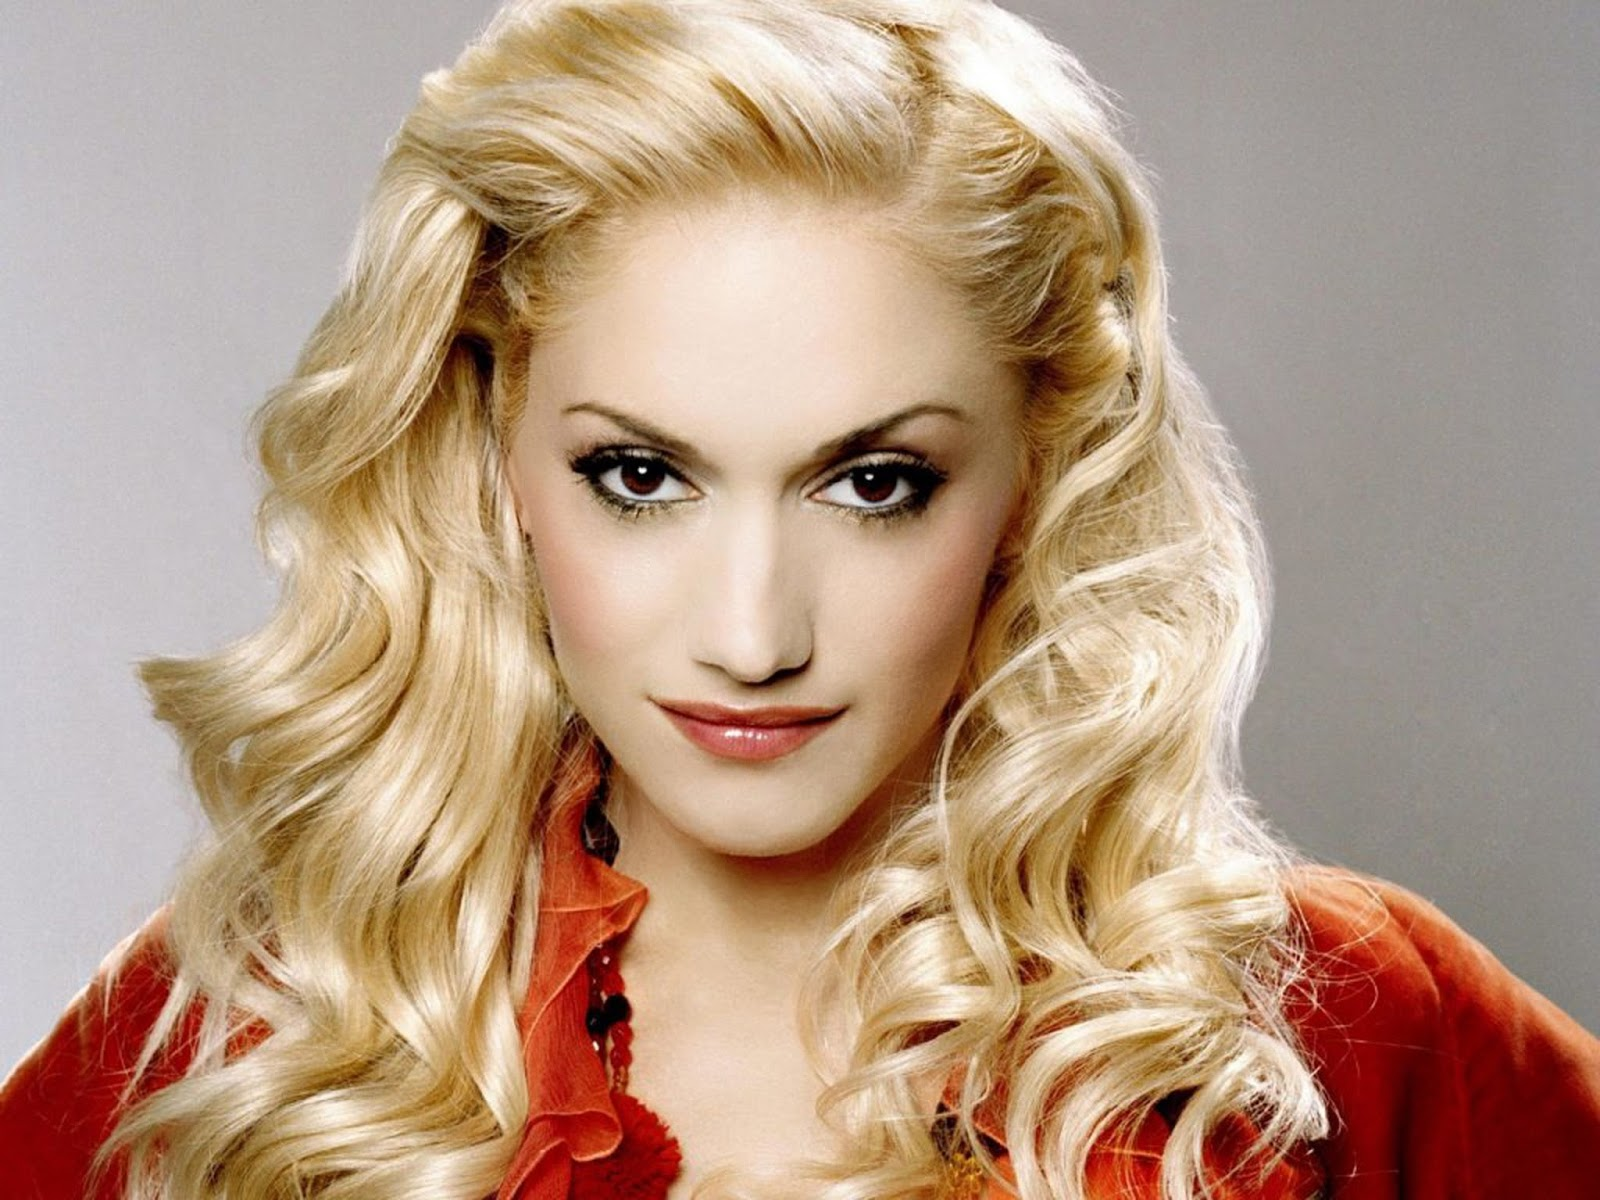 Gwen Stefani Hairstyles | Hairstyles Photos гвен стефани